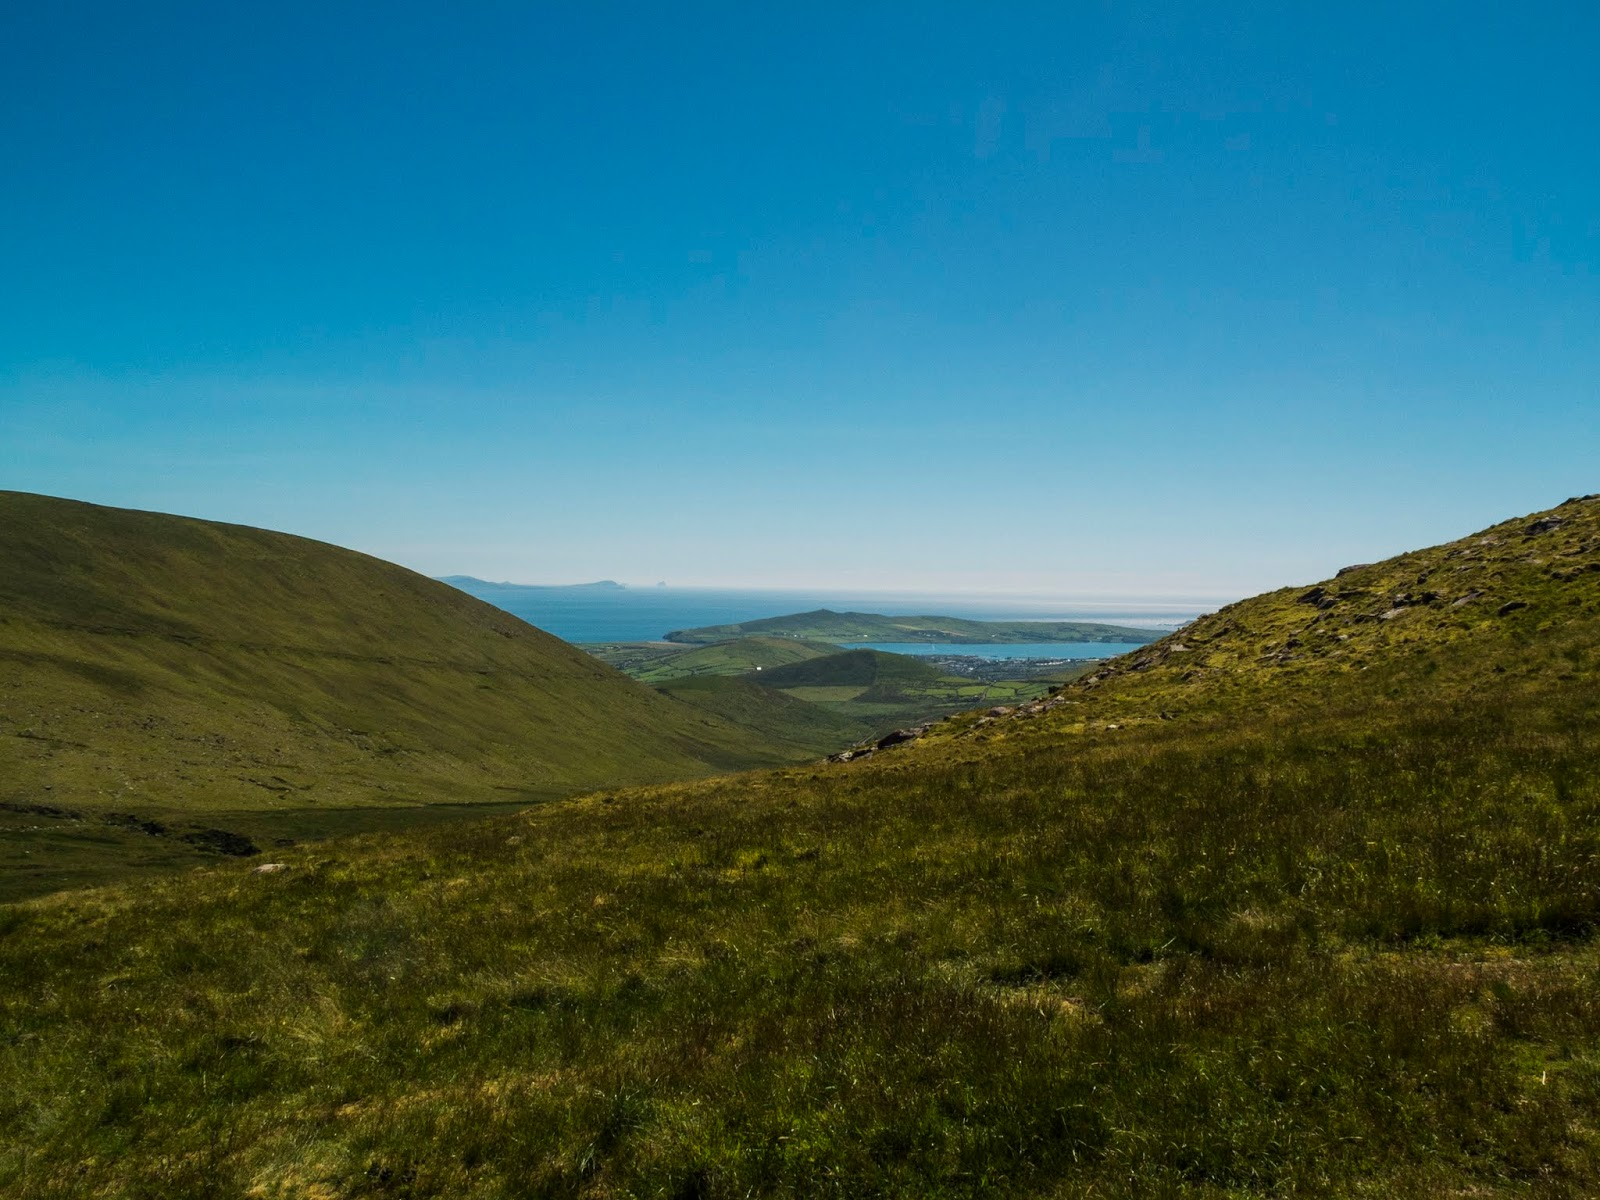 View from Conor Pass looking towards the Iveragh Peninsula and Skellig Islands.